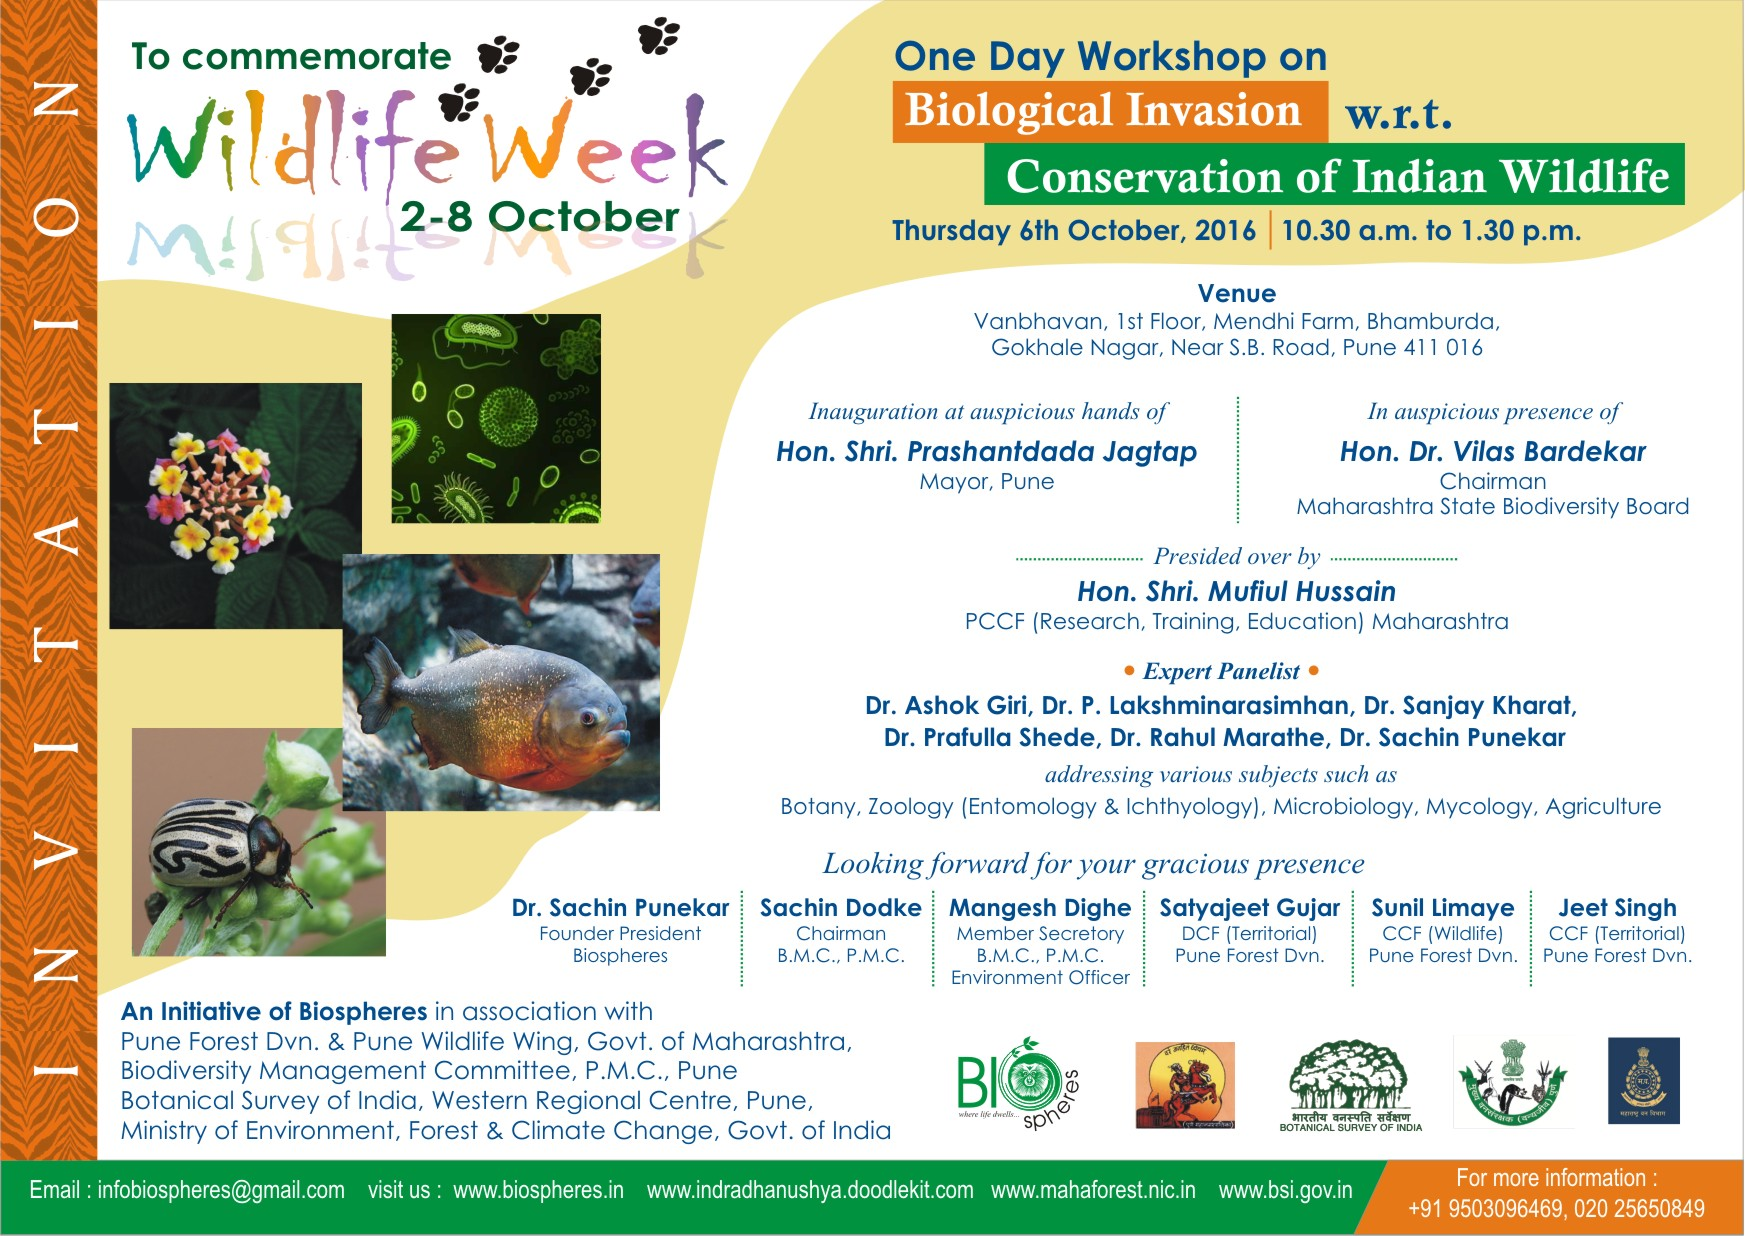 Upcoming Event: ENVIS Centre, Ministry of Environment